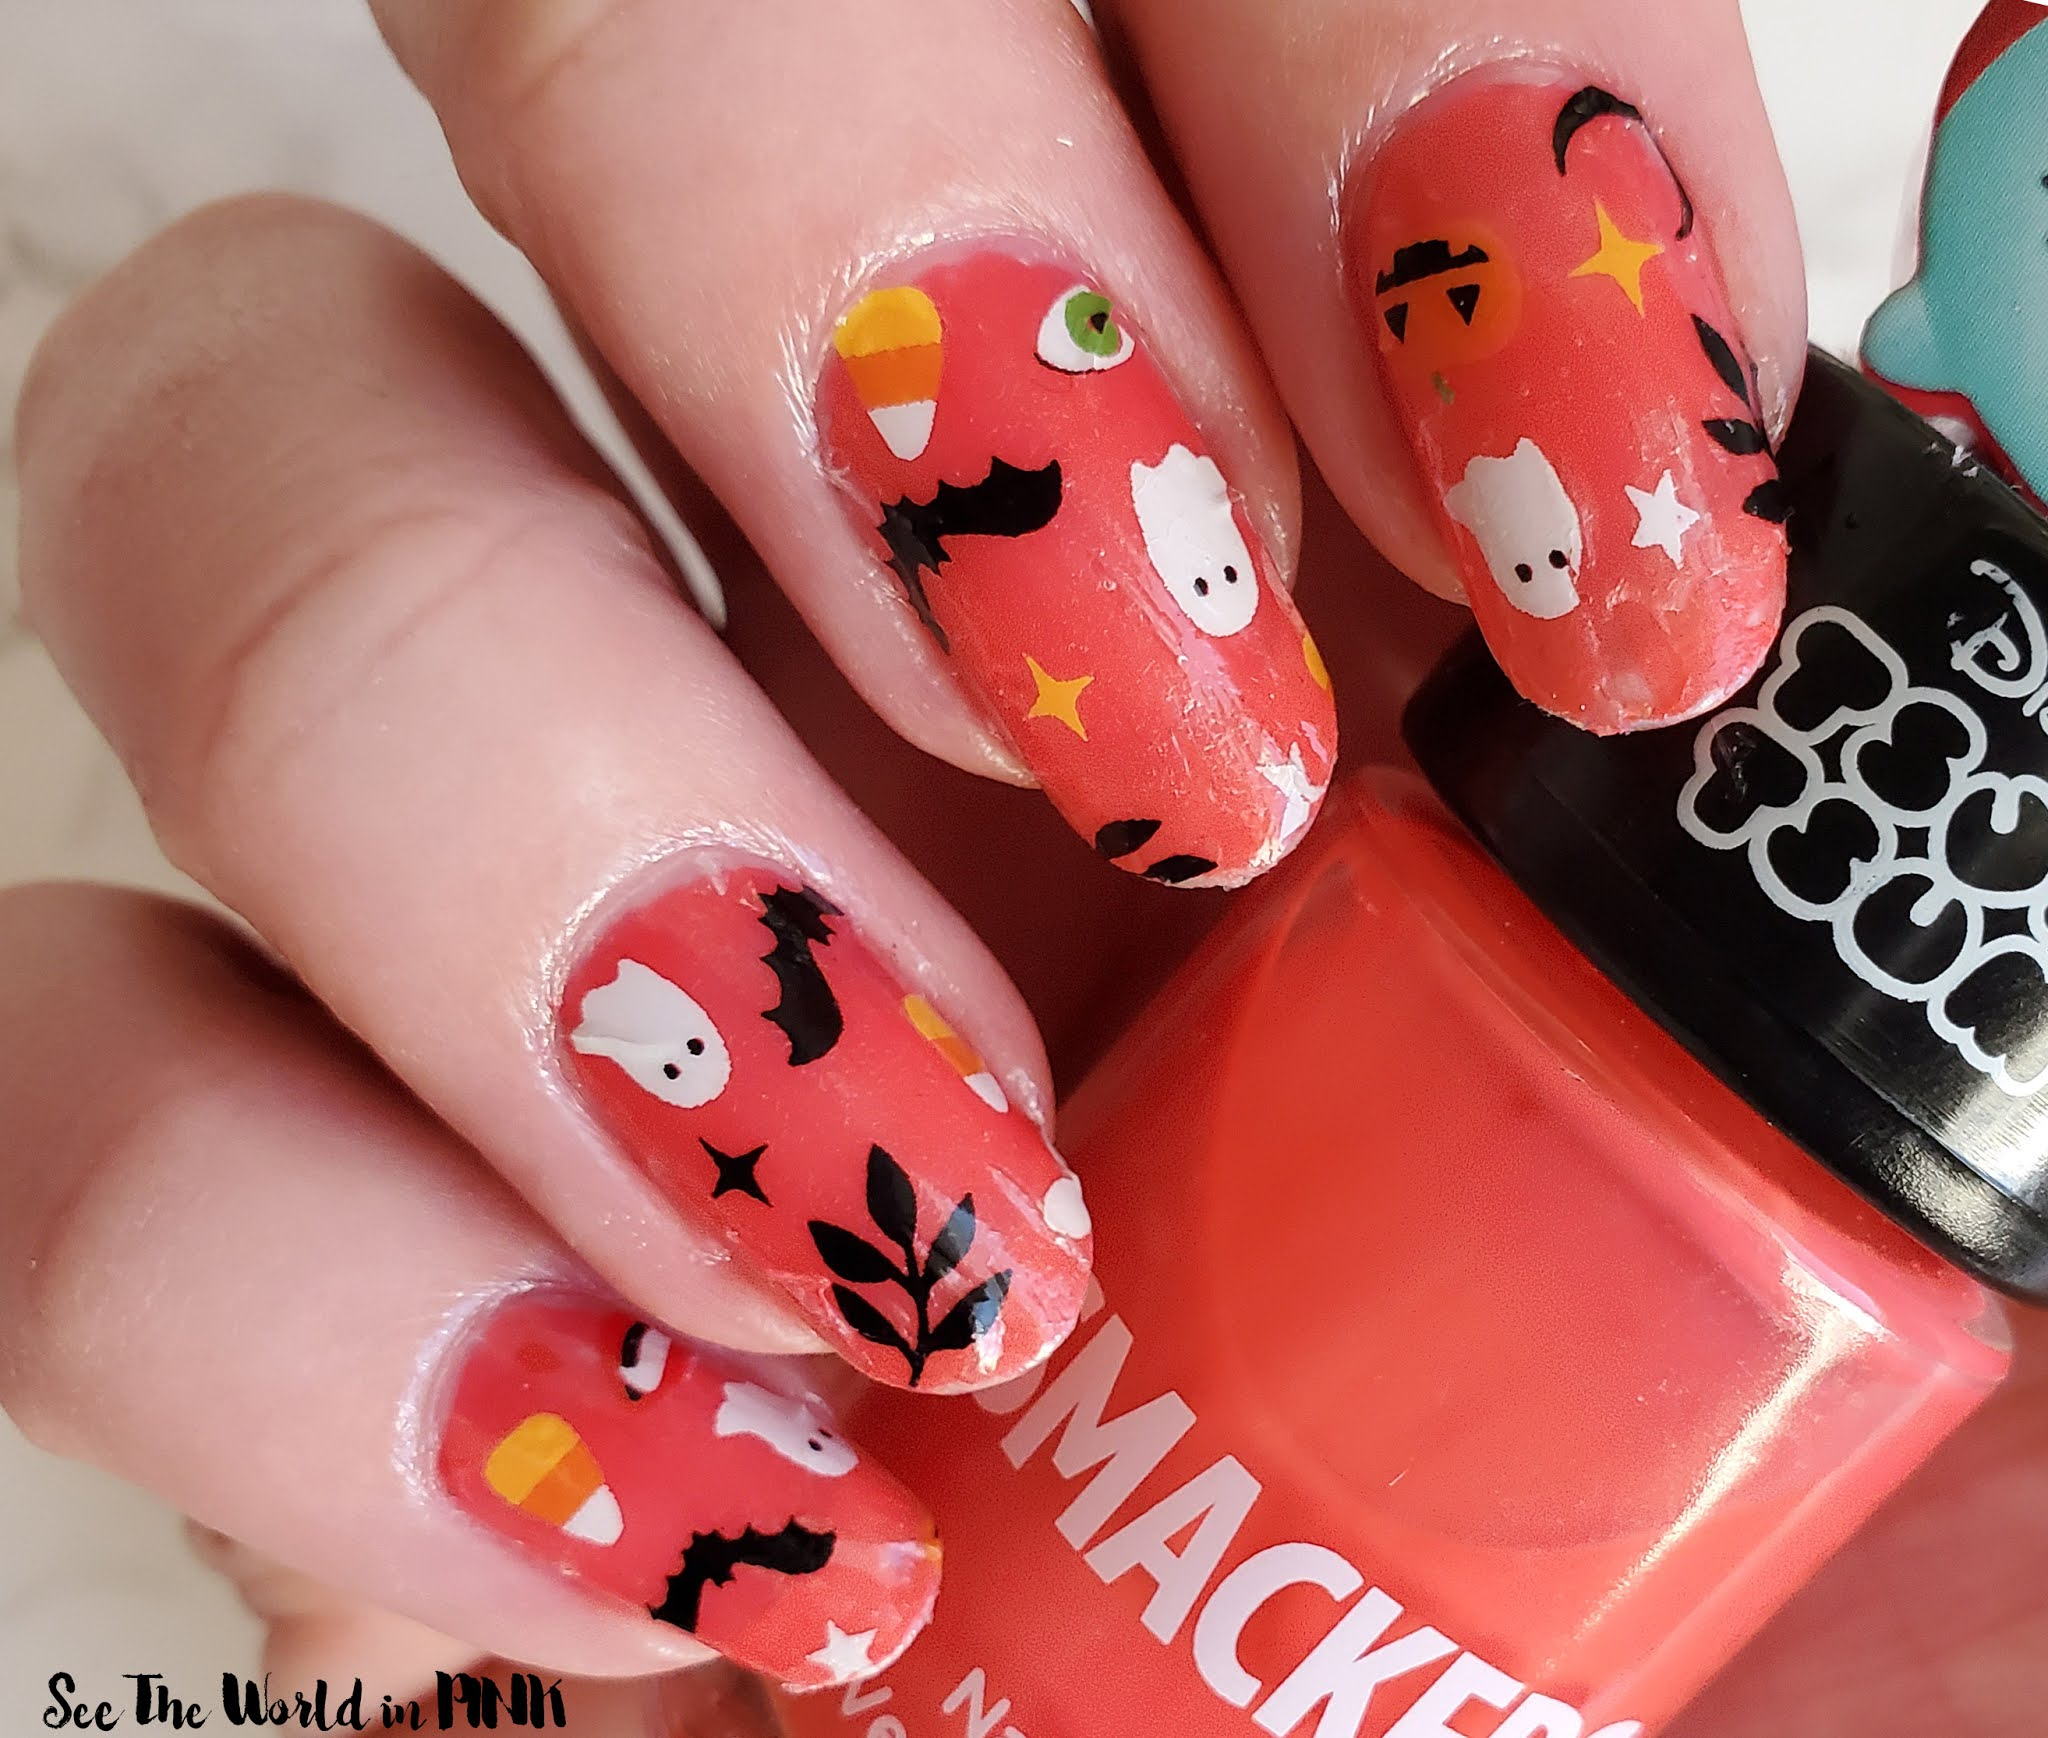 Manicure Monday - Scratch Boo Halloween Nail Wraps